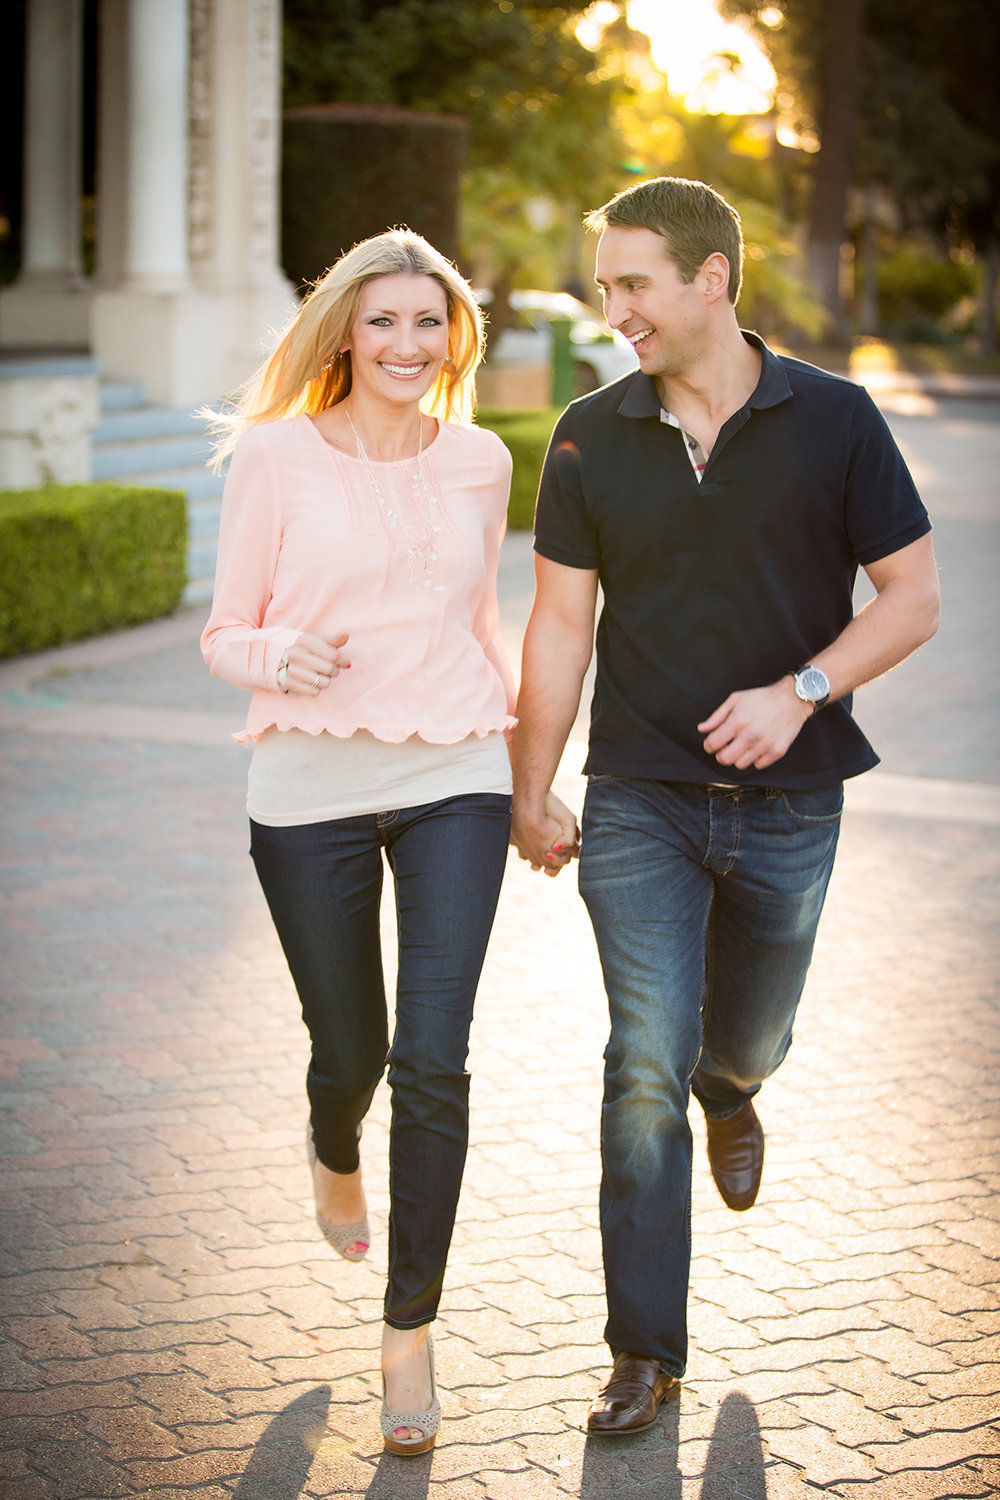 Balboa Park engagement photos fun couple running holding hands